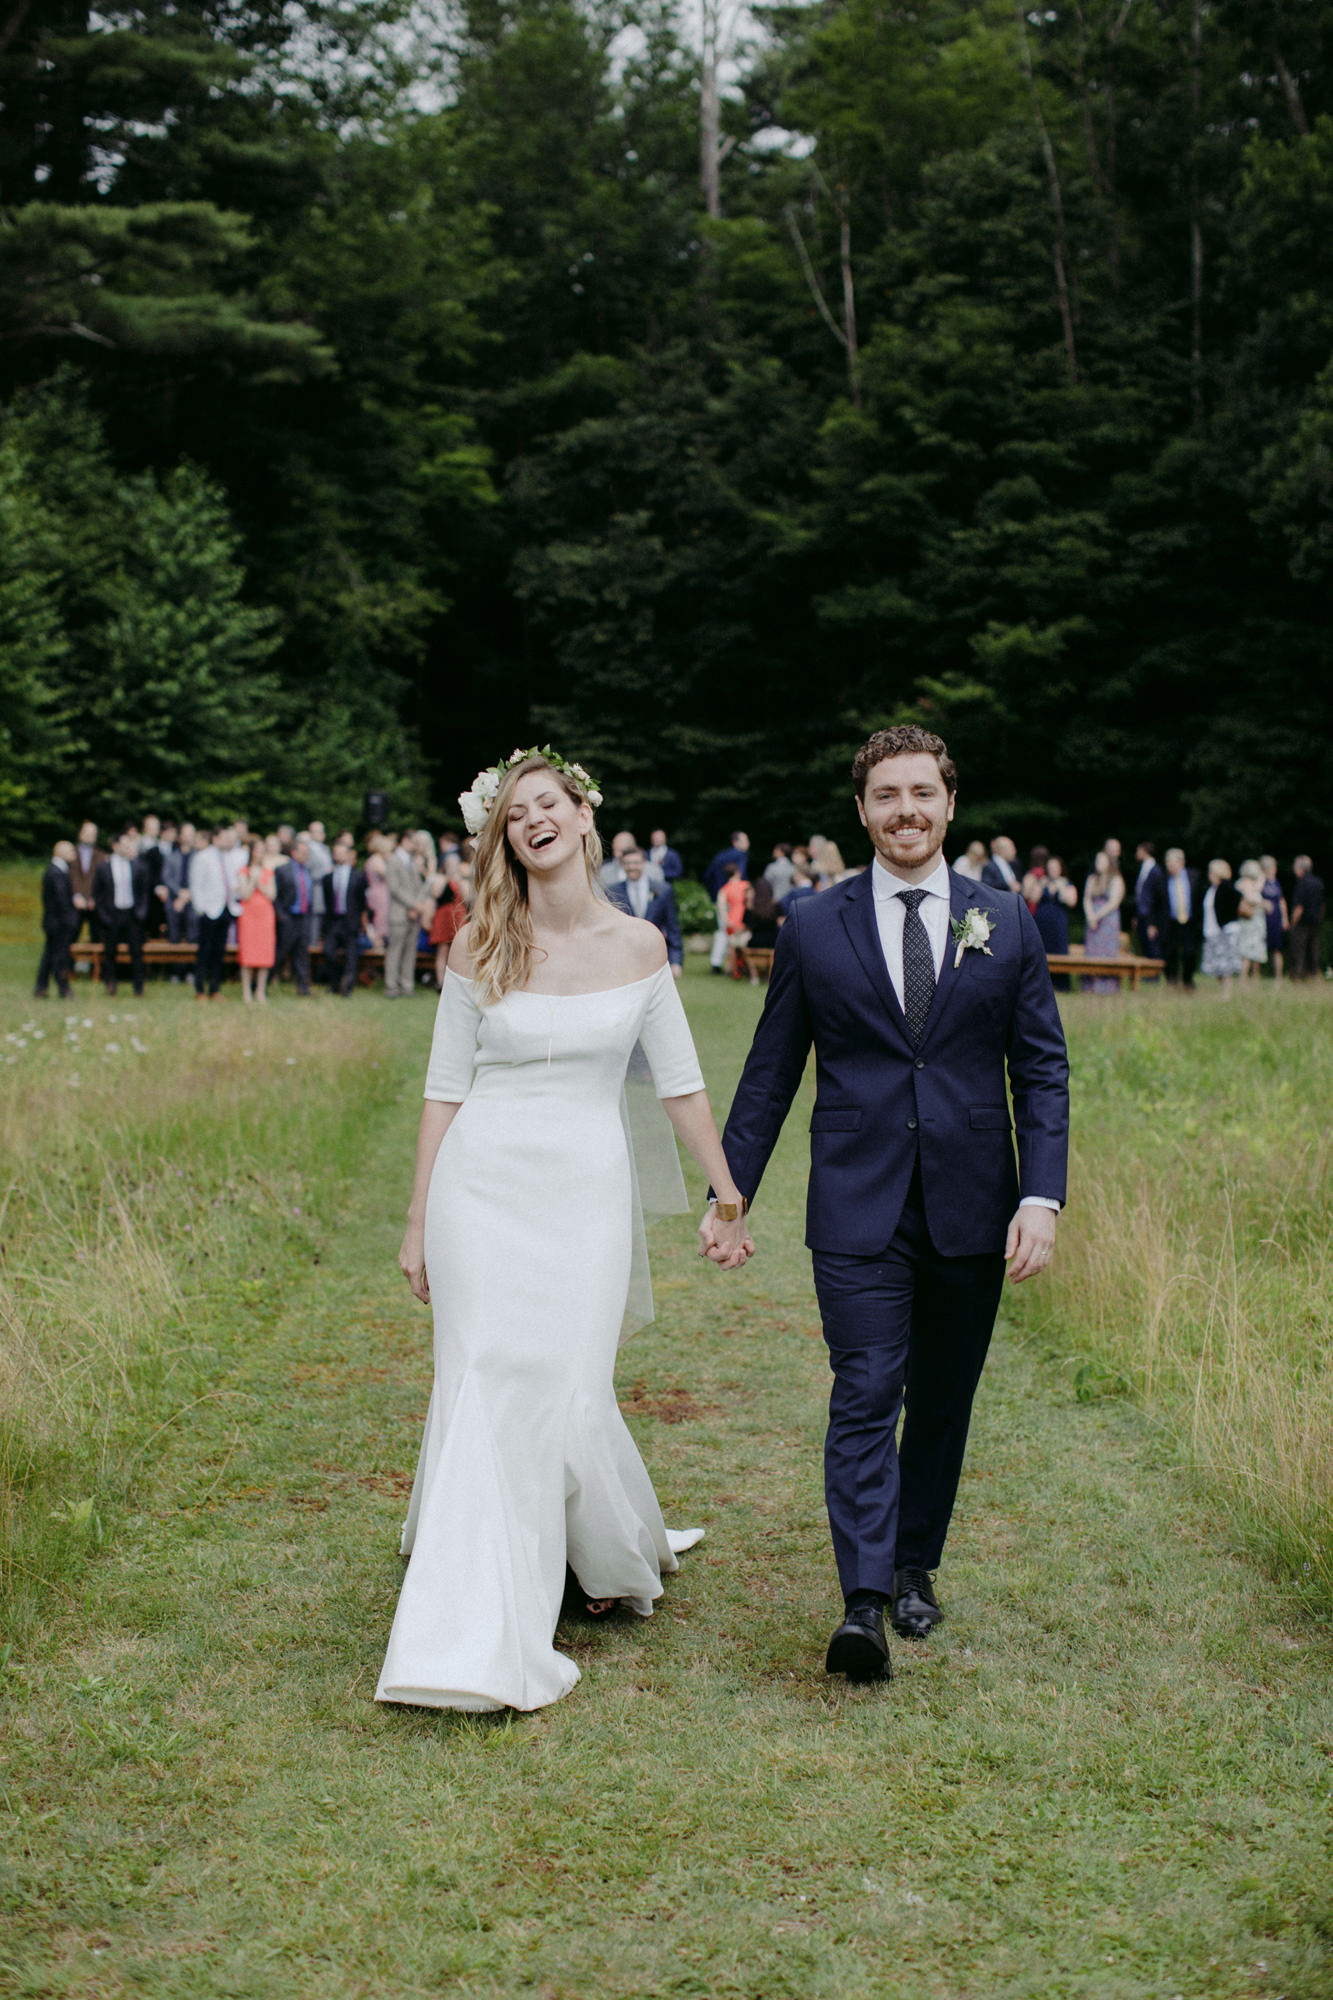 FOXFIREMOUNTAINHOUSE_CATSKILLS_WEDDING_SAMMBLAKE_PJW_0369.jpg